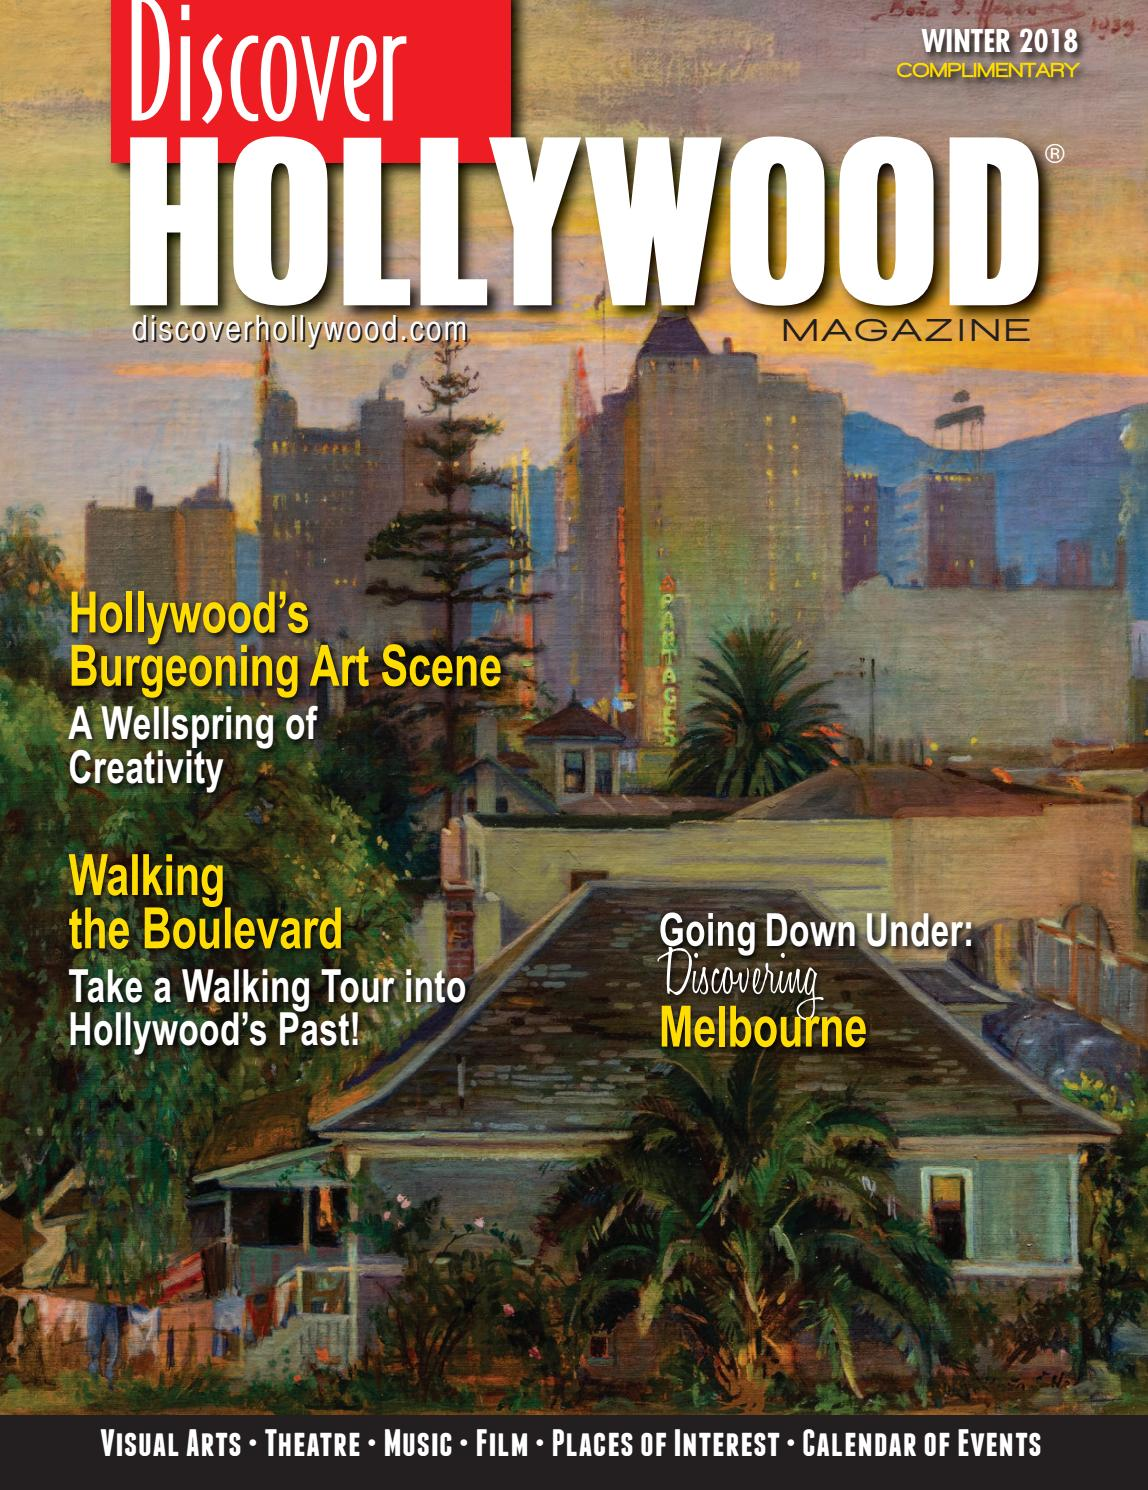 Discover Hollywood Winter 2018 by Discover Hollywood